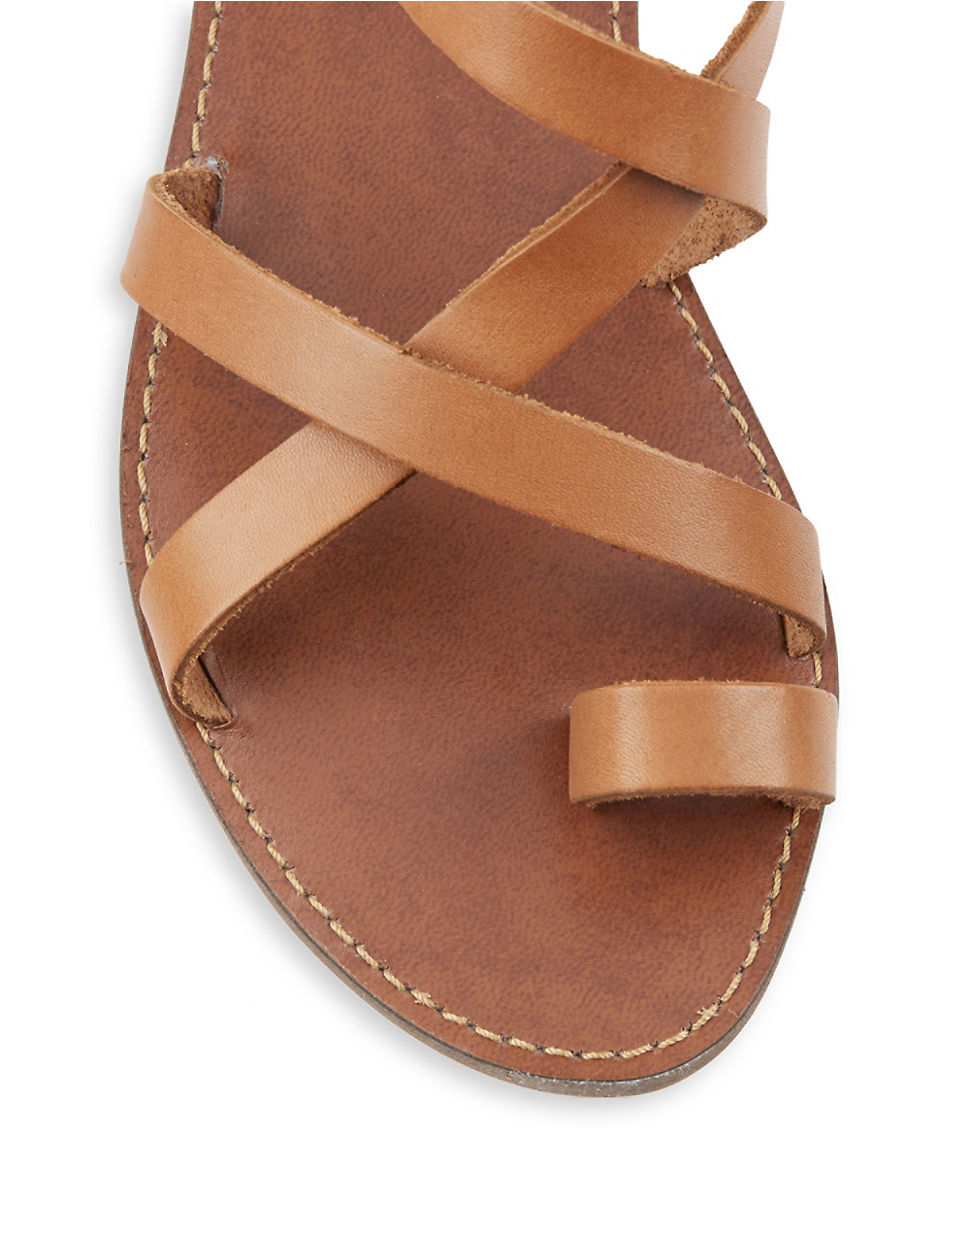 373f7e69c44 Steve Madden Agathist Leather Strappy Sandals in Brown - Lyst